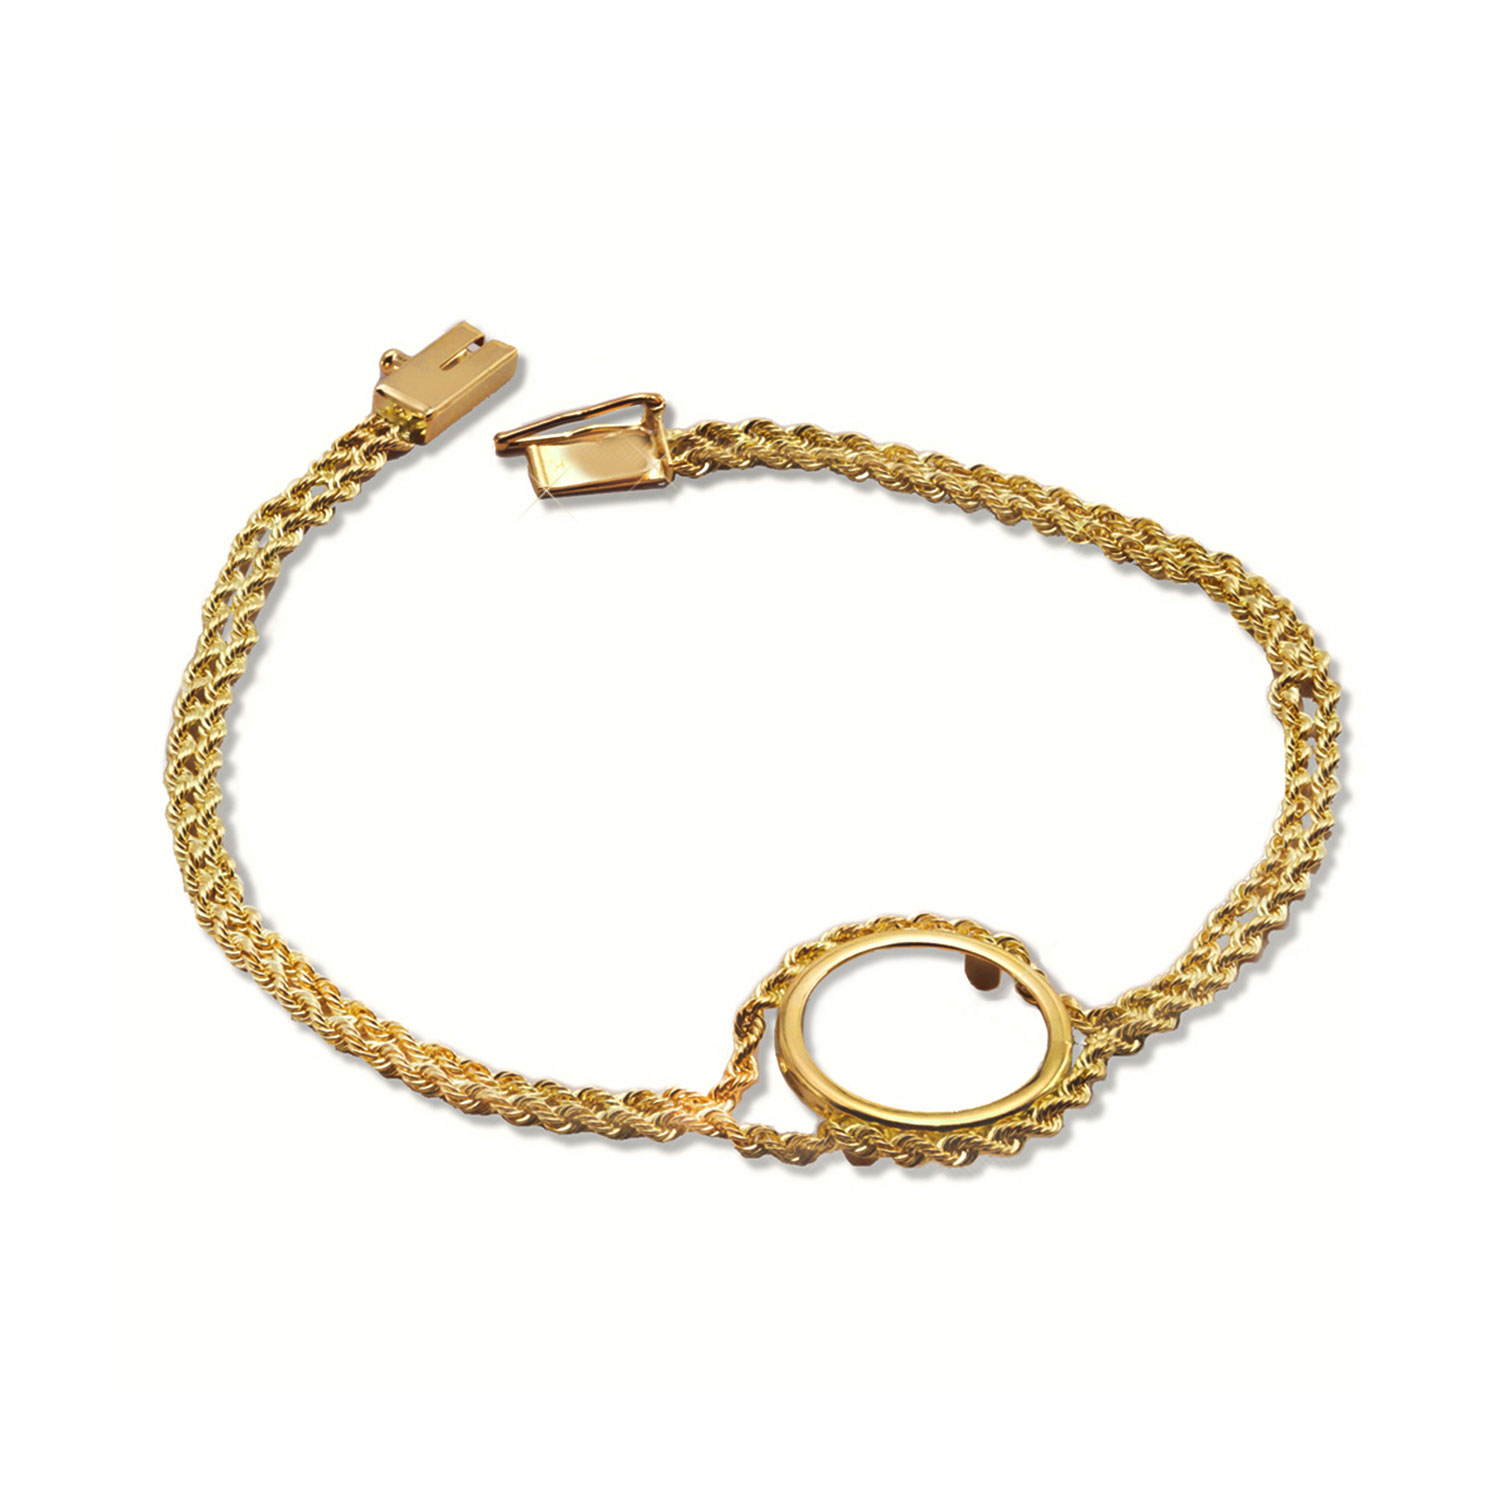 14k Gold Polished Rope Bracelet - 7 inches (14 mm)